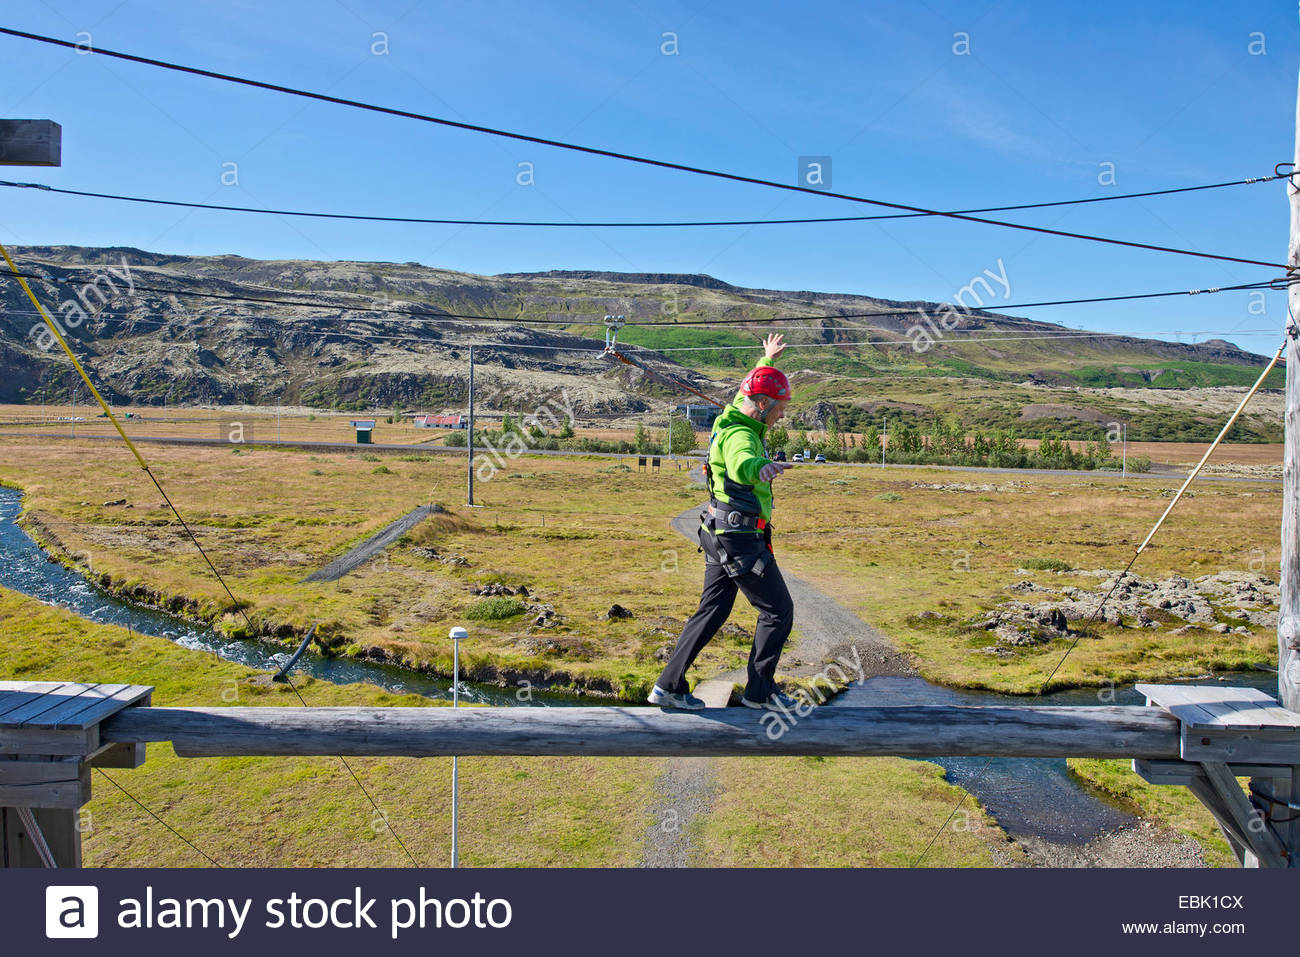 Mature man balancing on wooden plank on high rope course - Stock Image